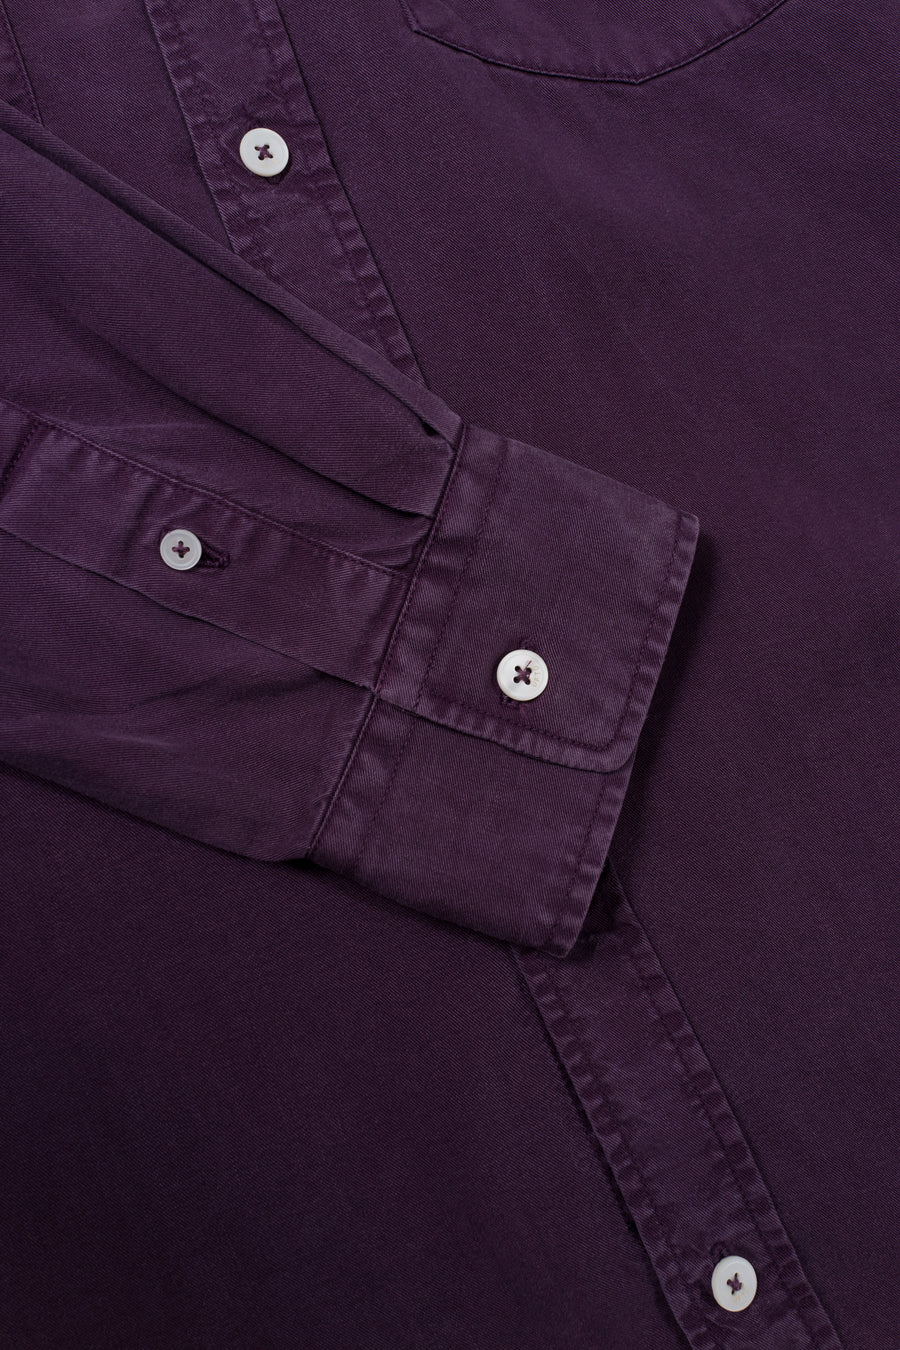 WOODSMAN SHIRT - Tencel Twill